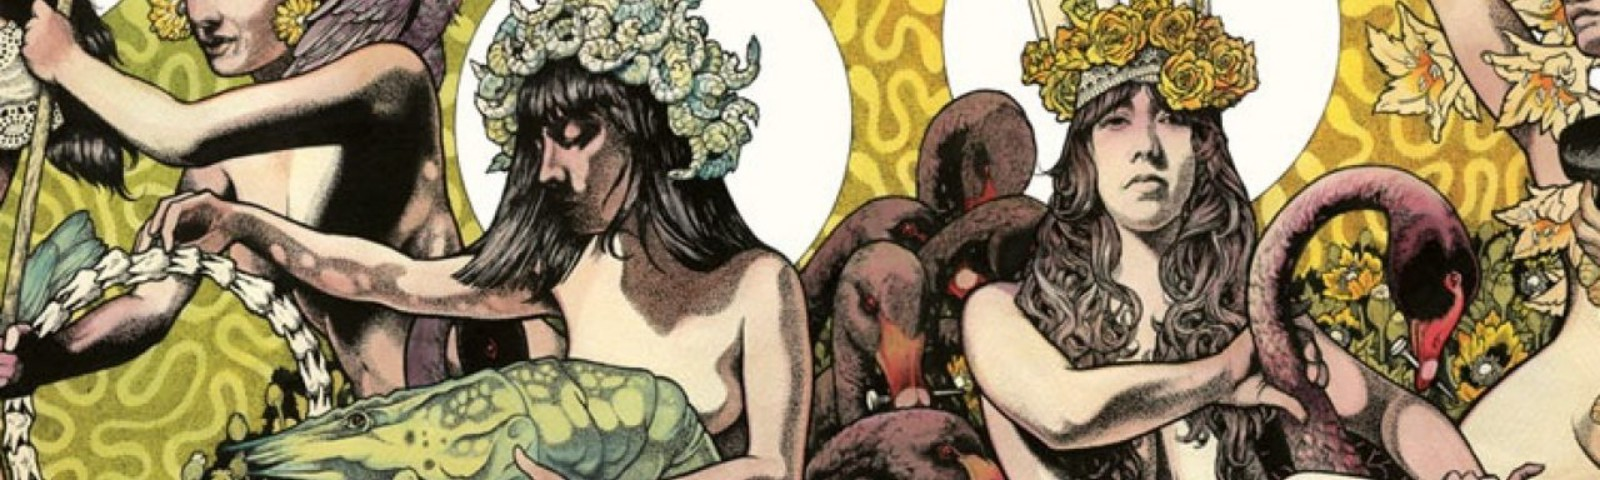 Composit image of Yellow & Green cover art by Baroness